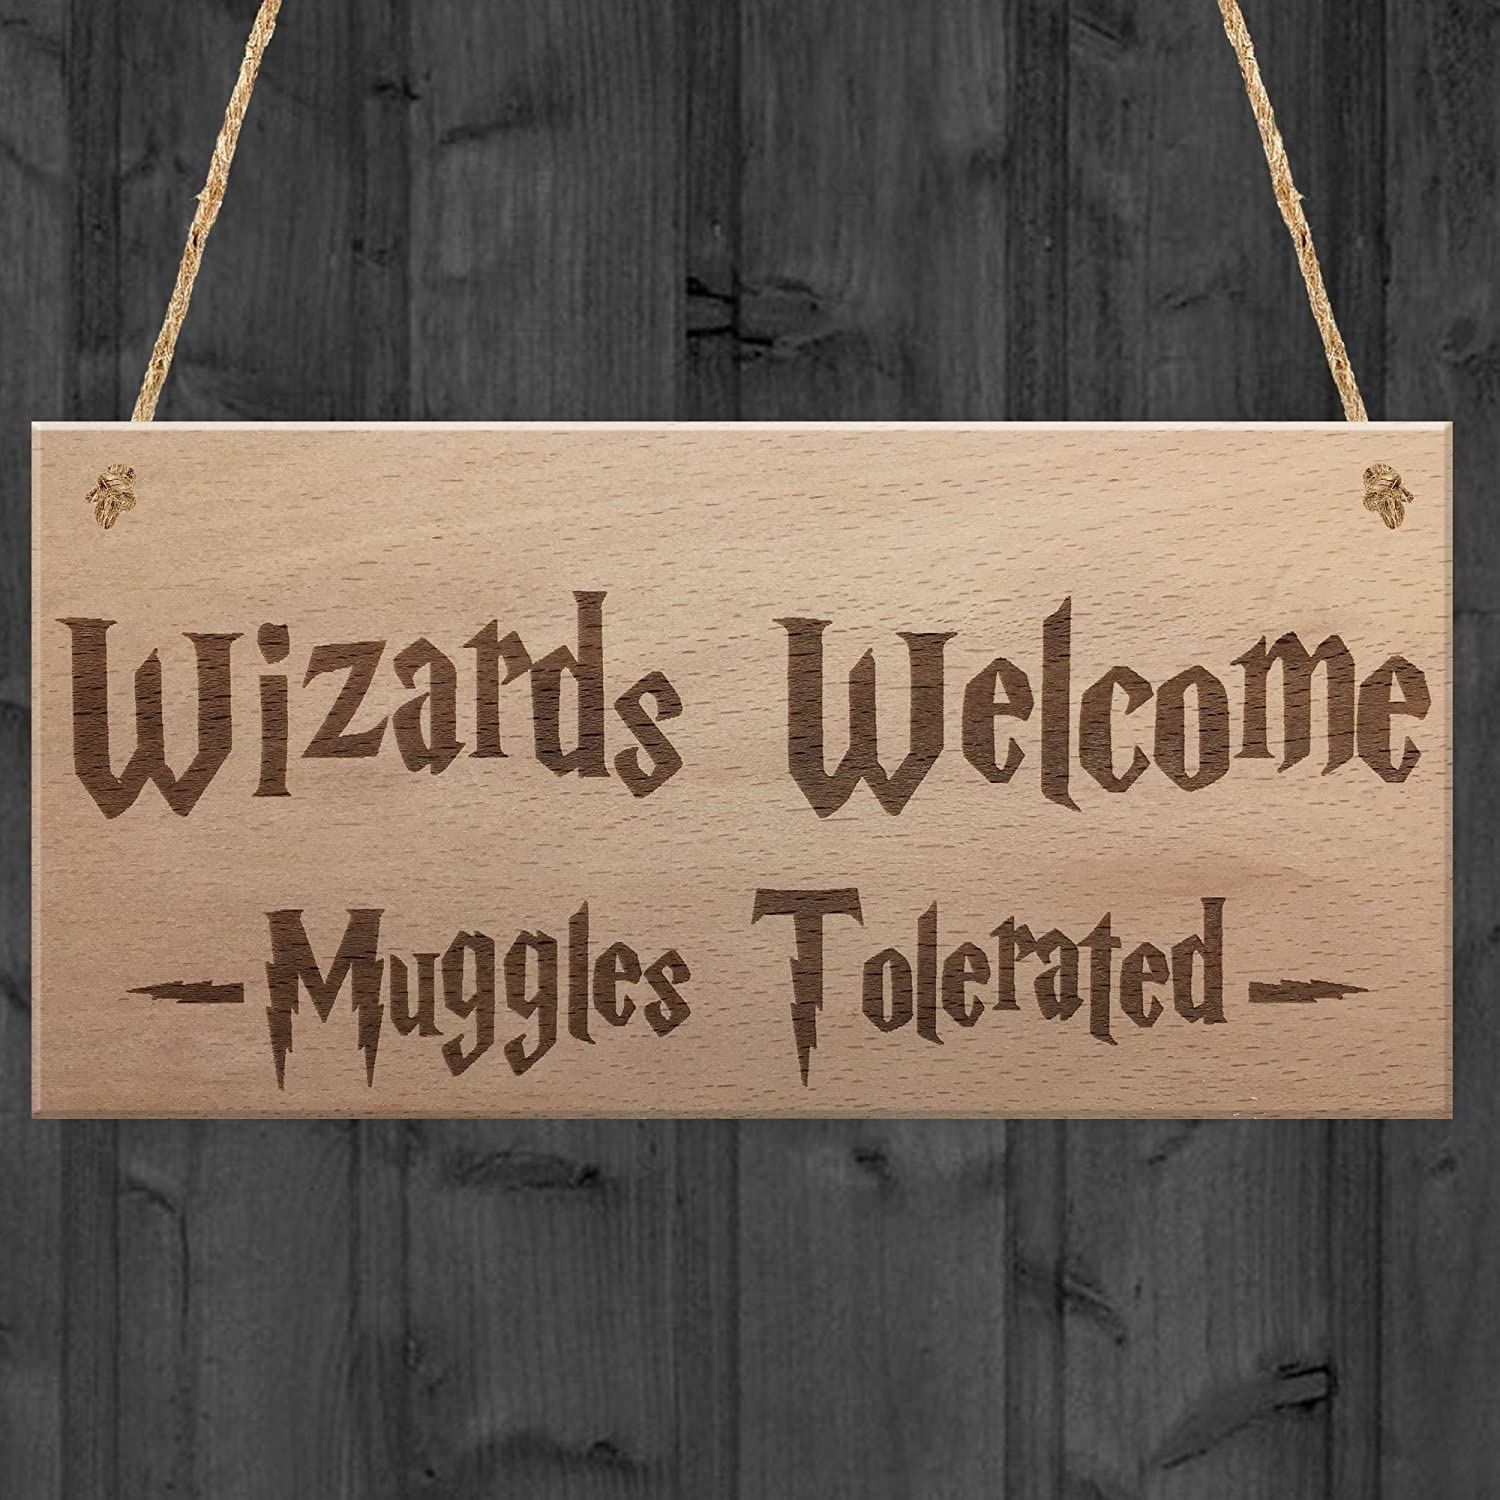 Hermosaa Wizards Welcome Muggles Tolerated Gift Hanging Plaque Magic Home Sign 4x8